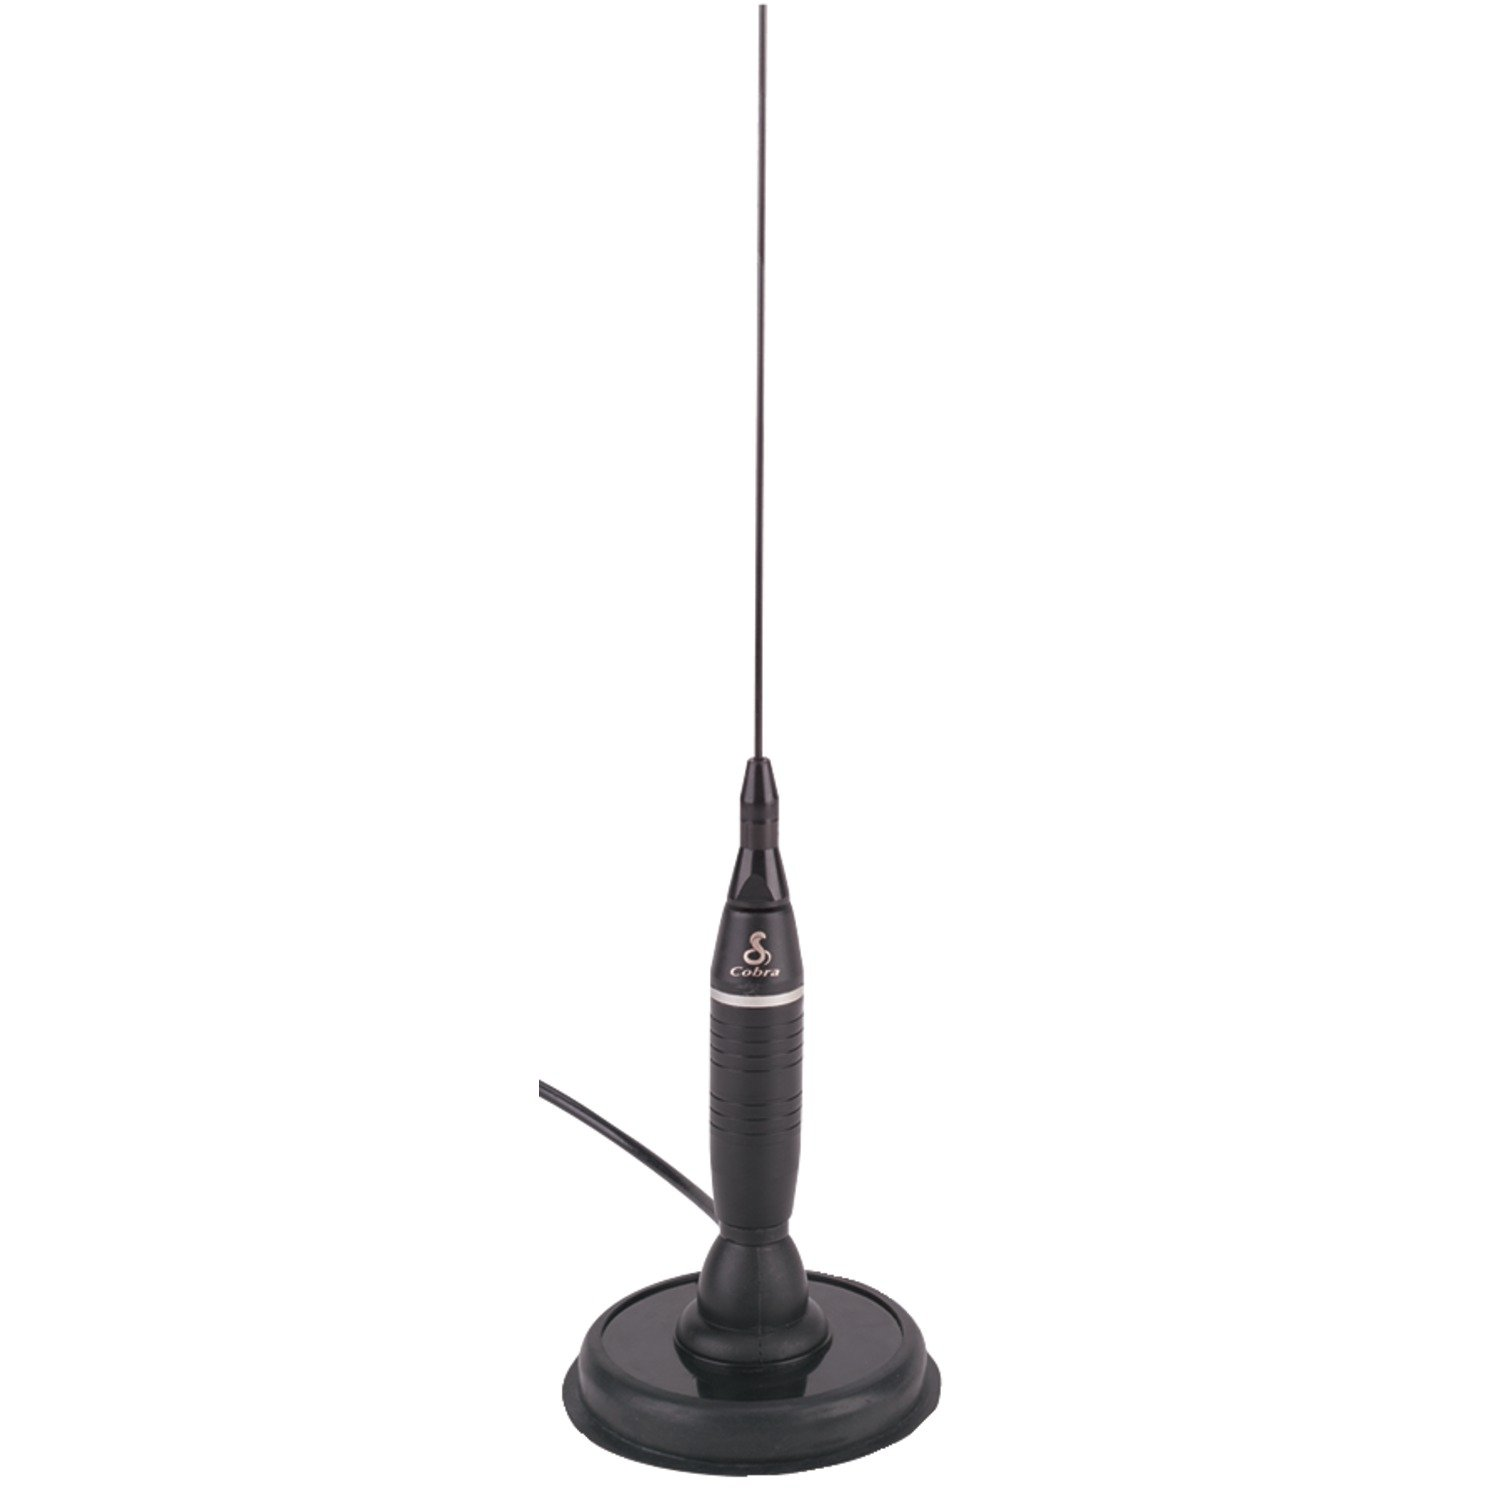 Best Cb Antenna 3